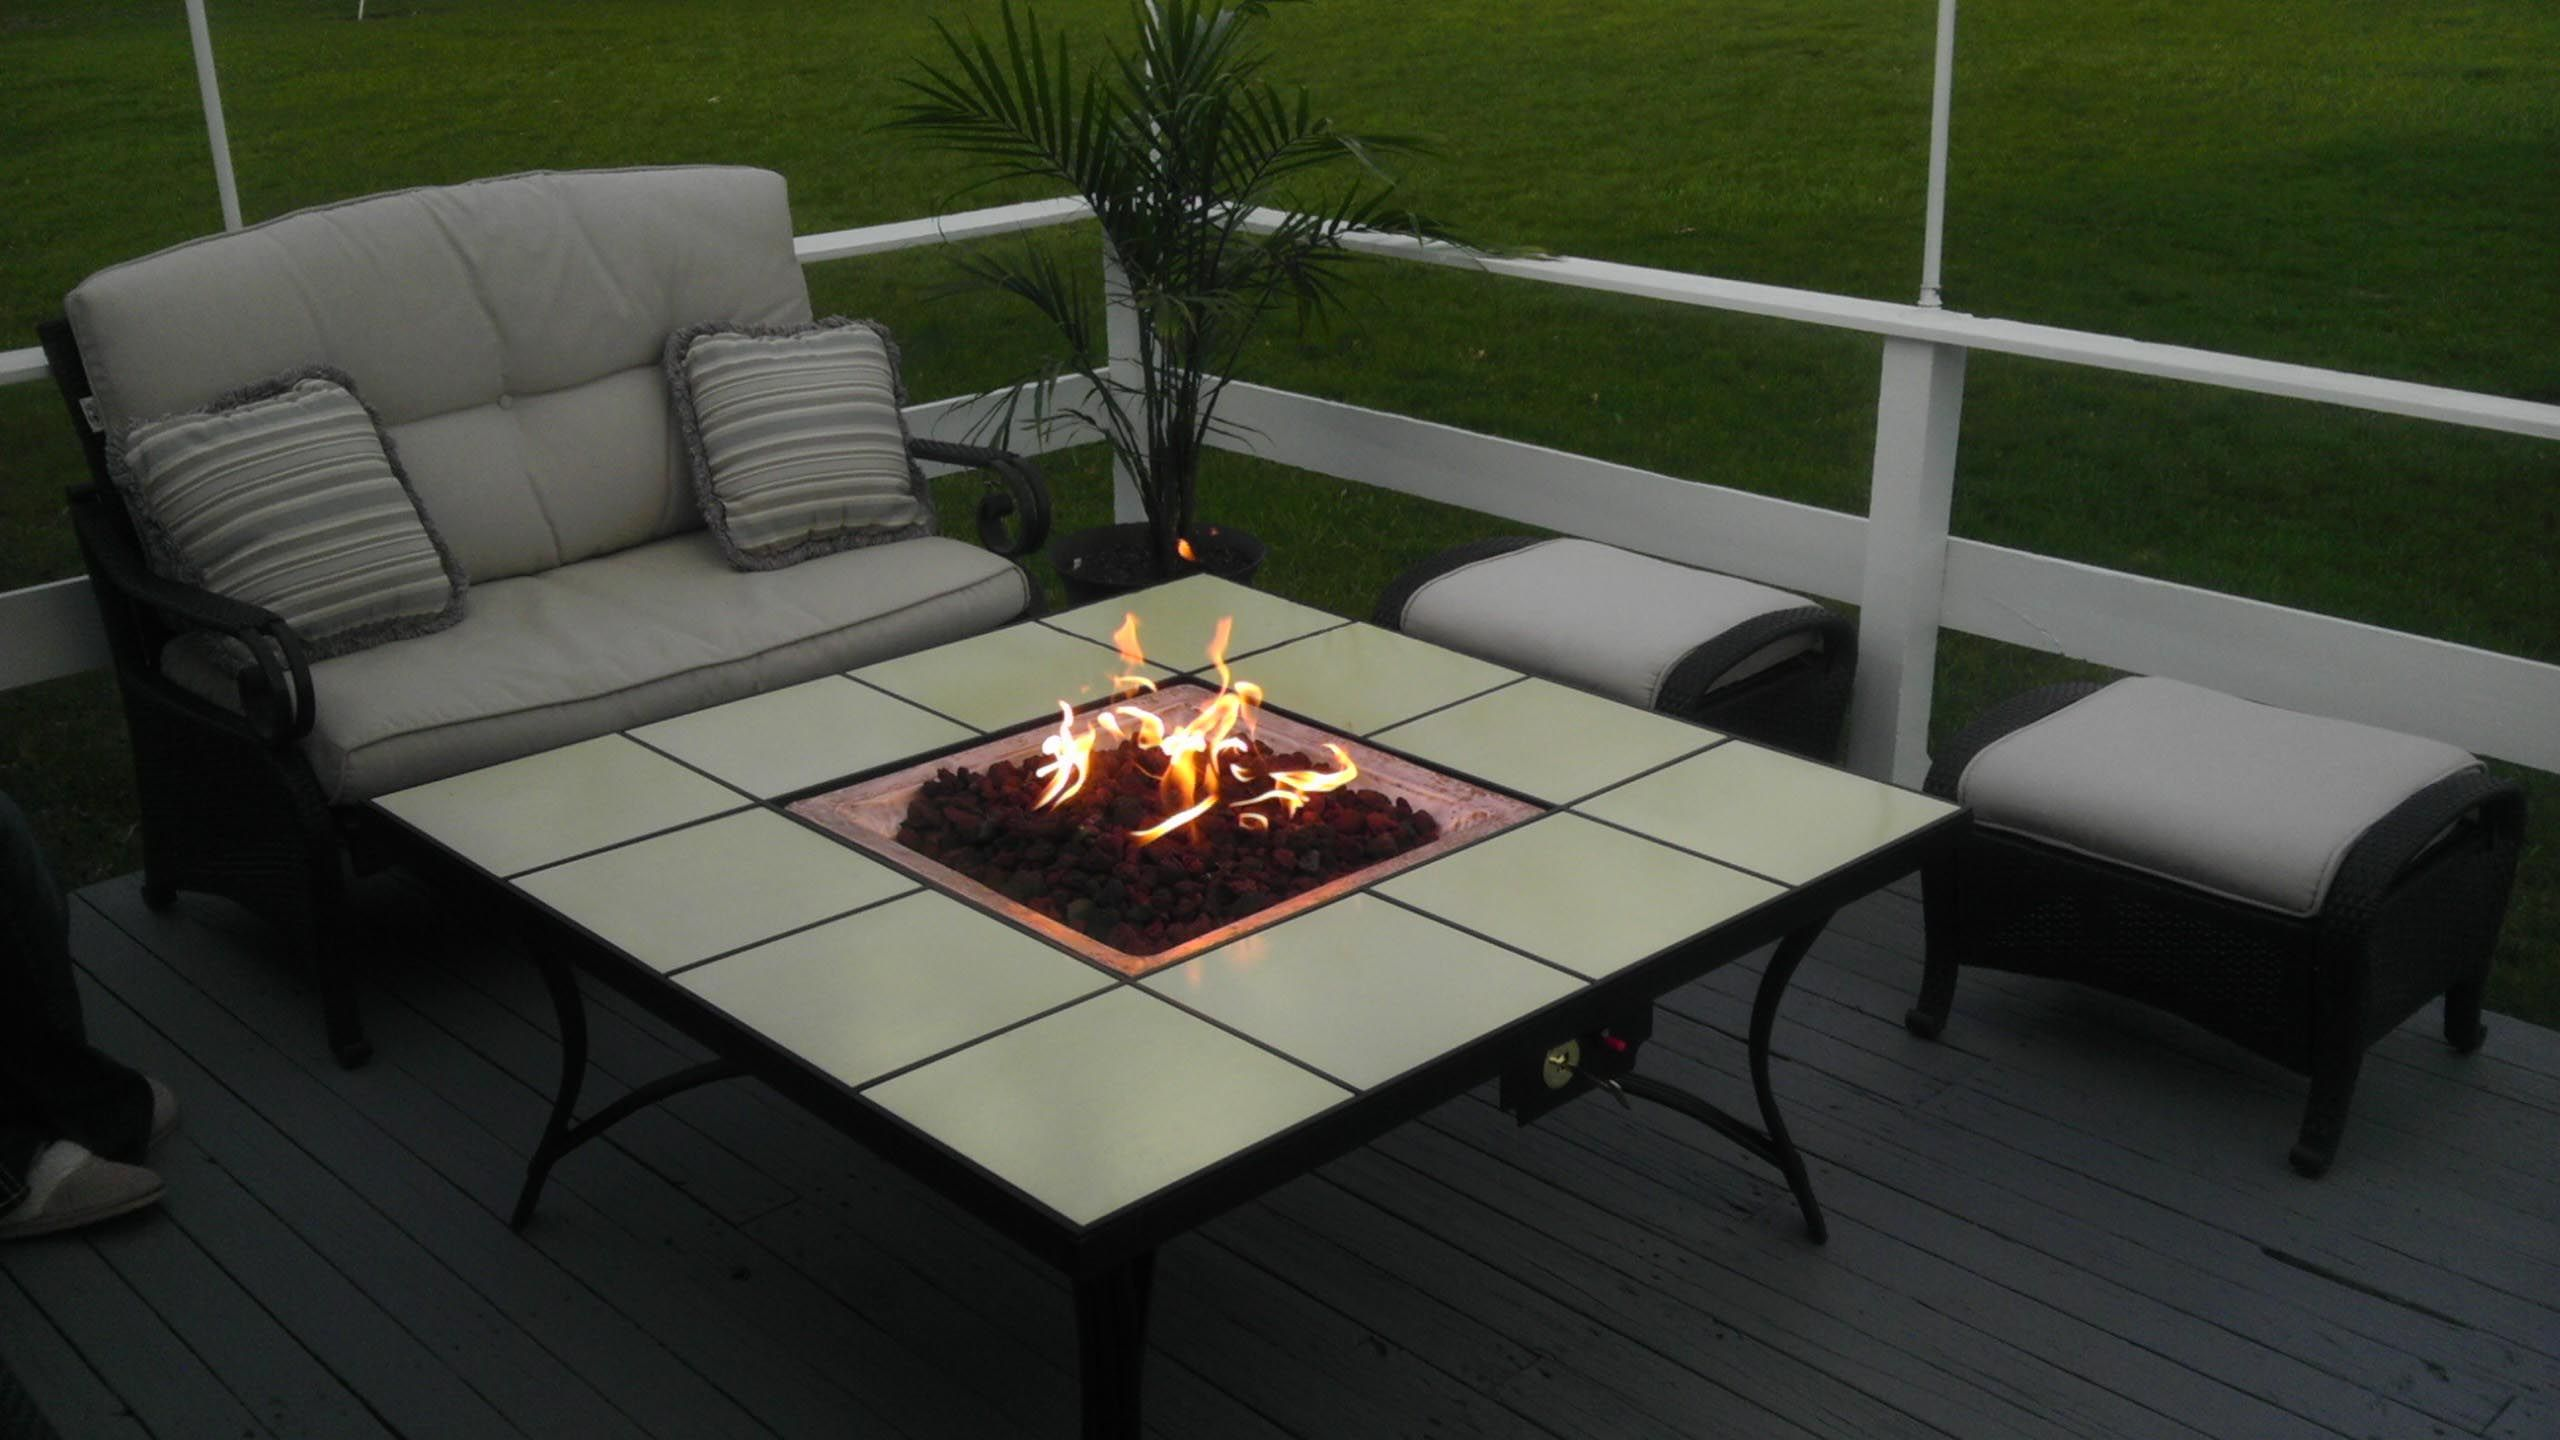 Diy propane fire pit kit propane fire pit kit fire pit backyard diy fire